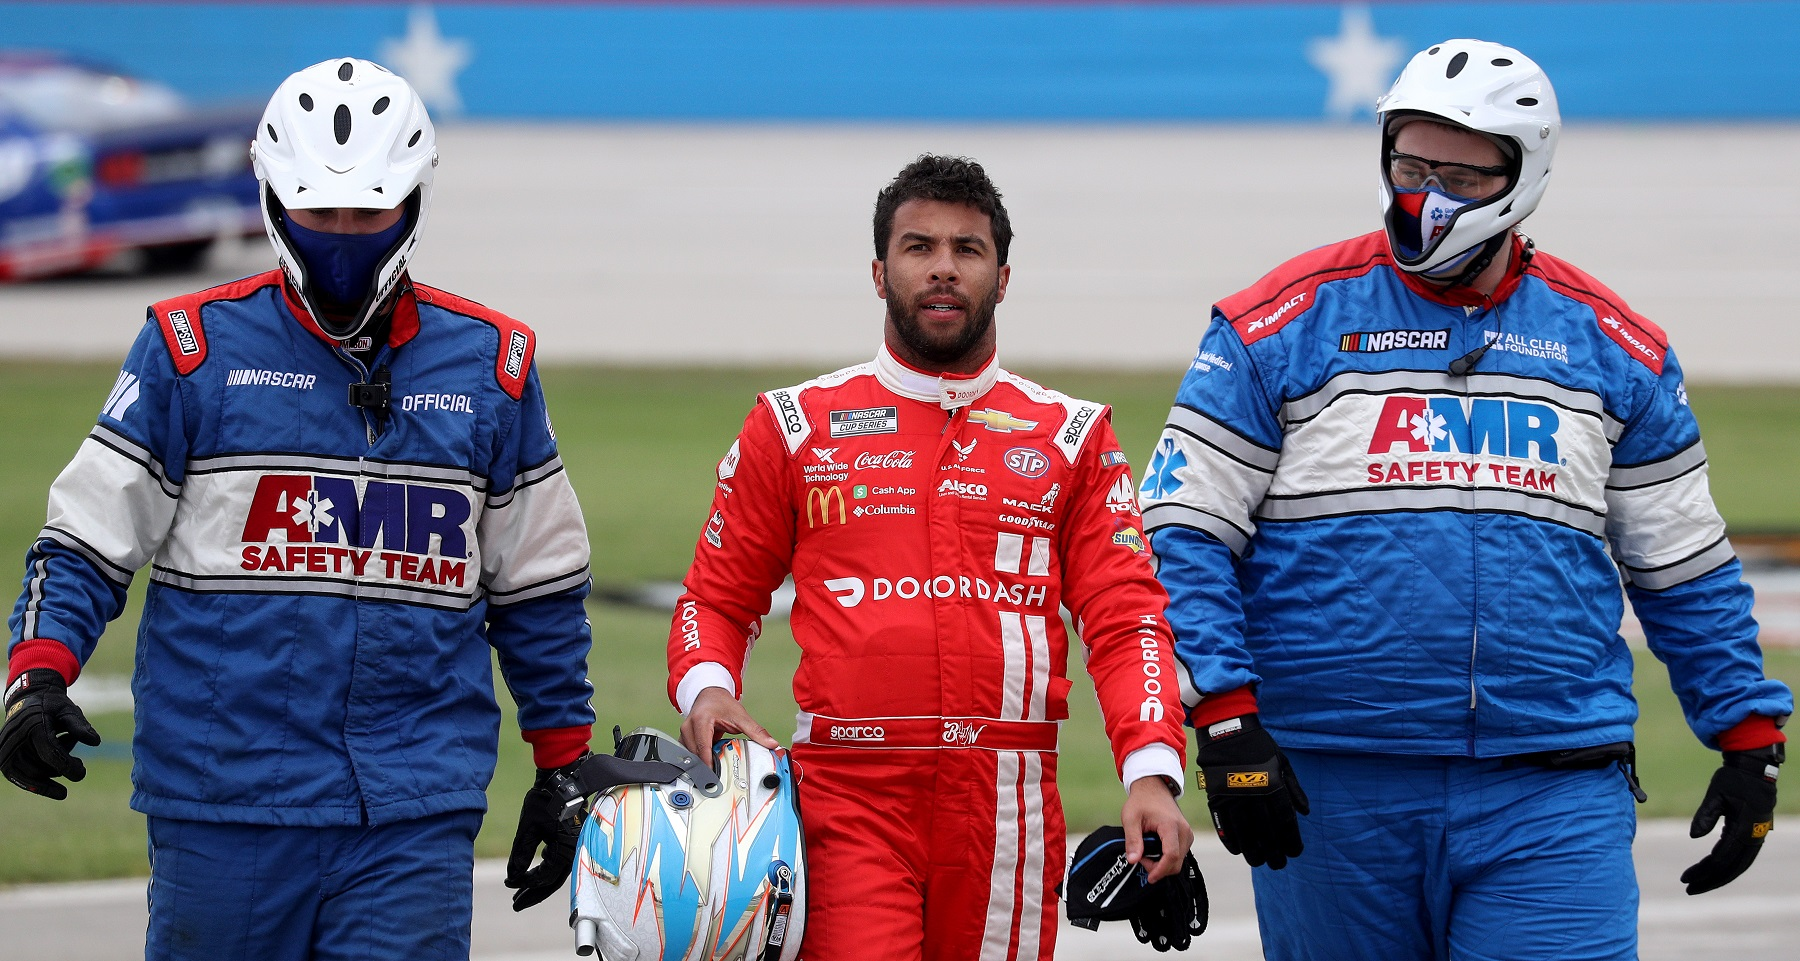 Bubba Wallace is driving for Michael Jordan's NASCAR team